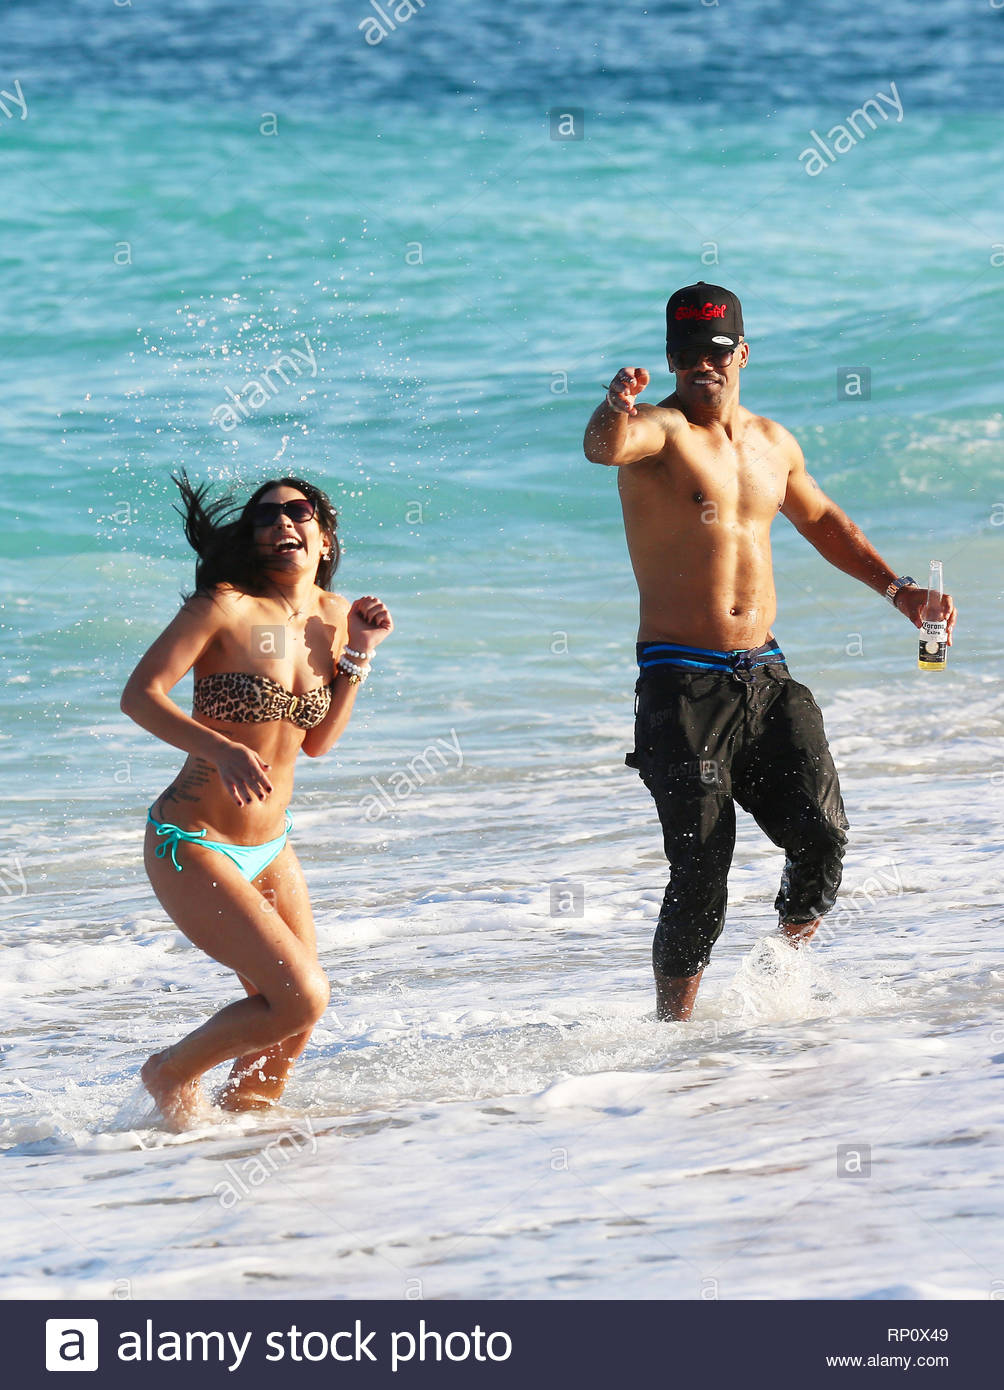 Miami, FL - Shemar Moore showed off his fit body in South Beach Miami today  with a hot brunette babe, Shemar enjoyed a cold beer and posed with a  little boy ...